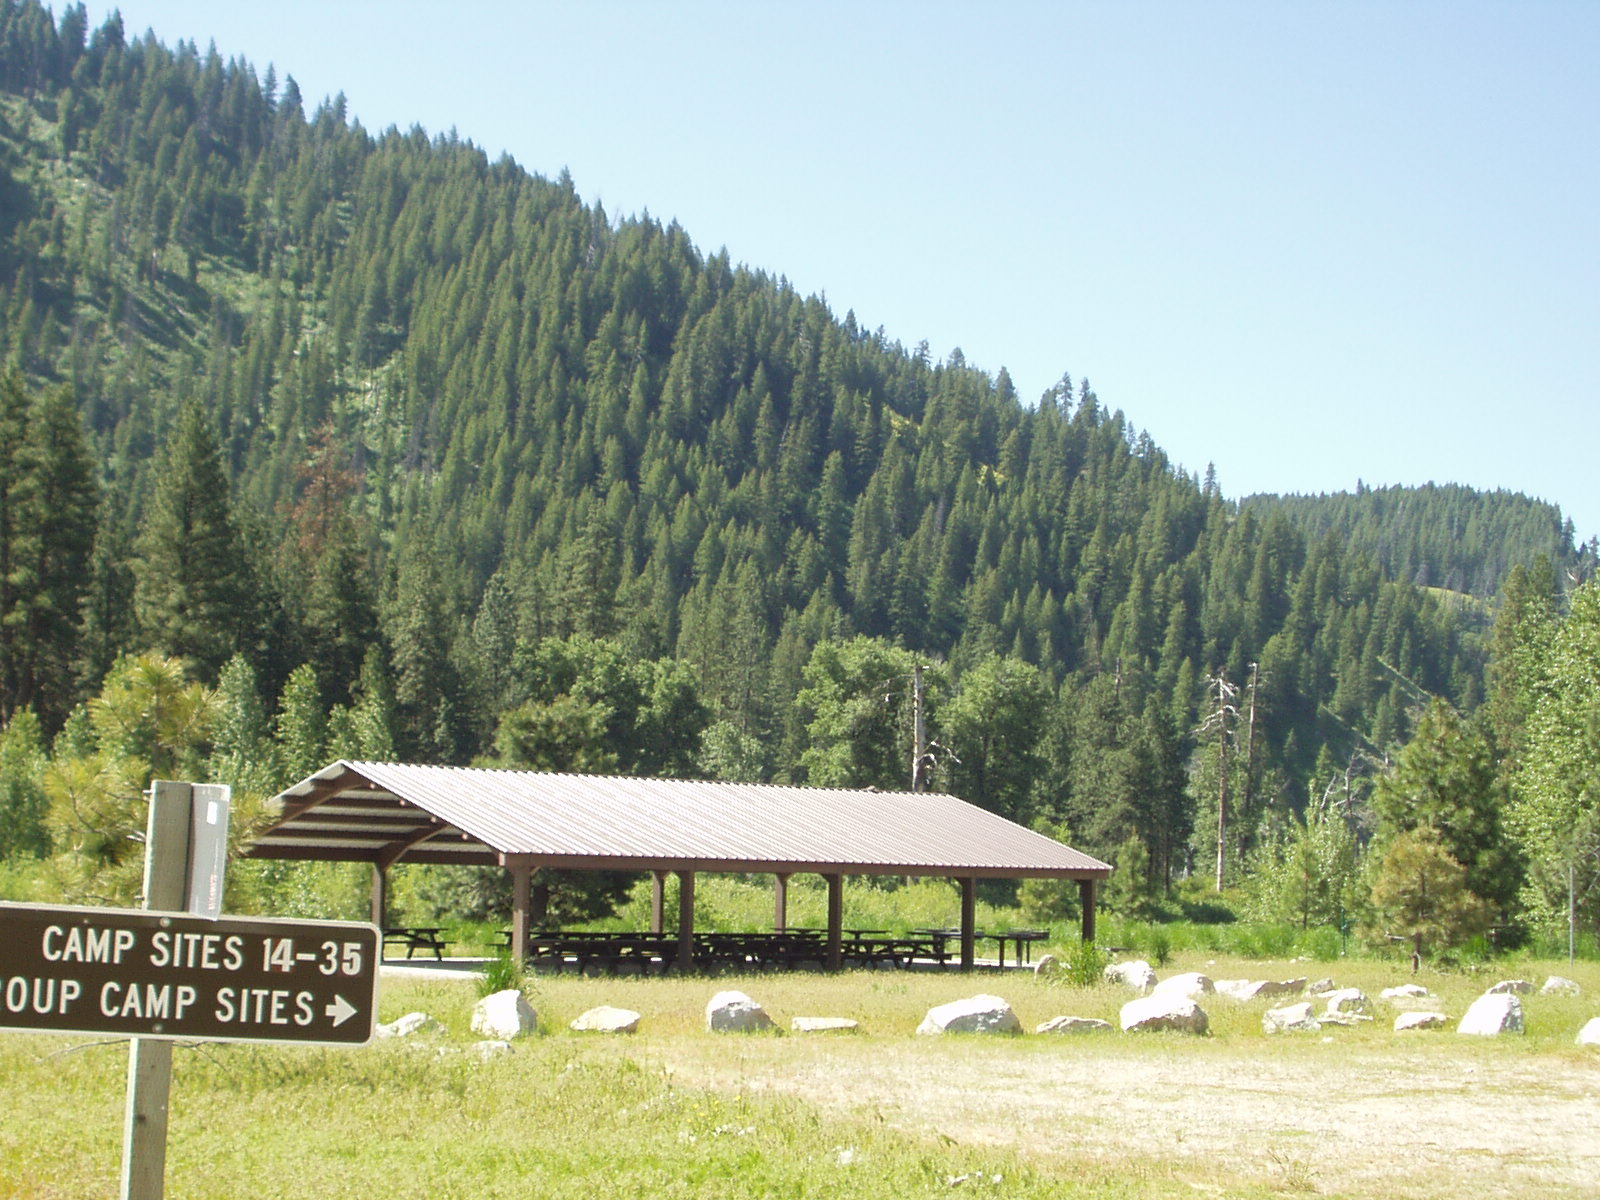 Elks Flat Group Campground